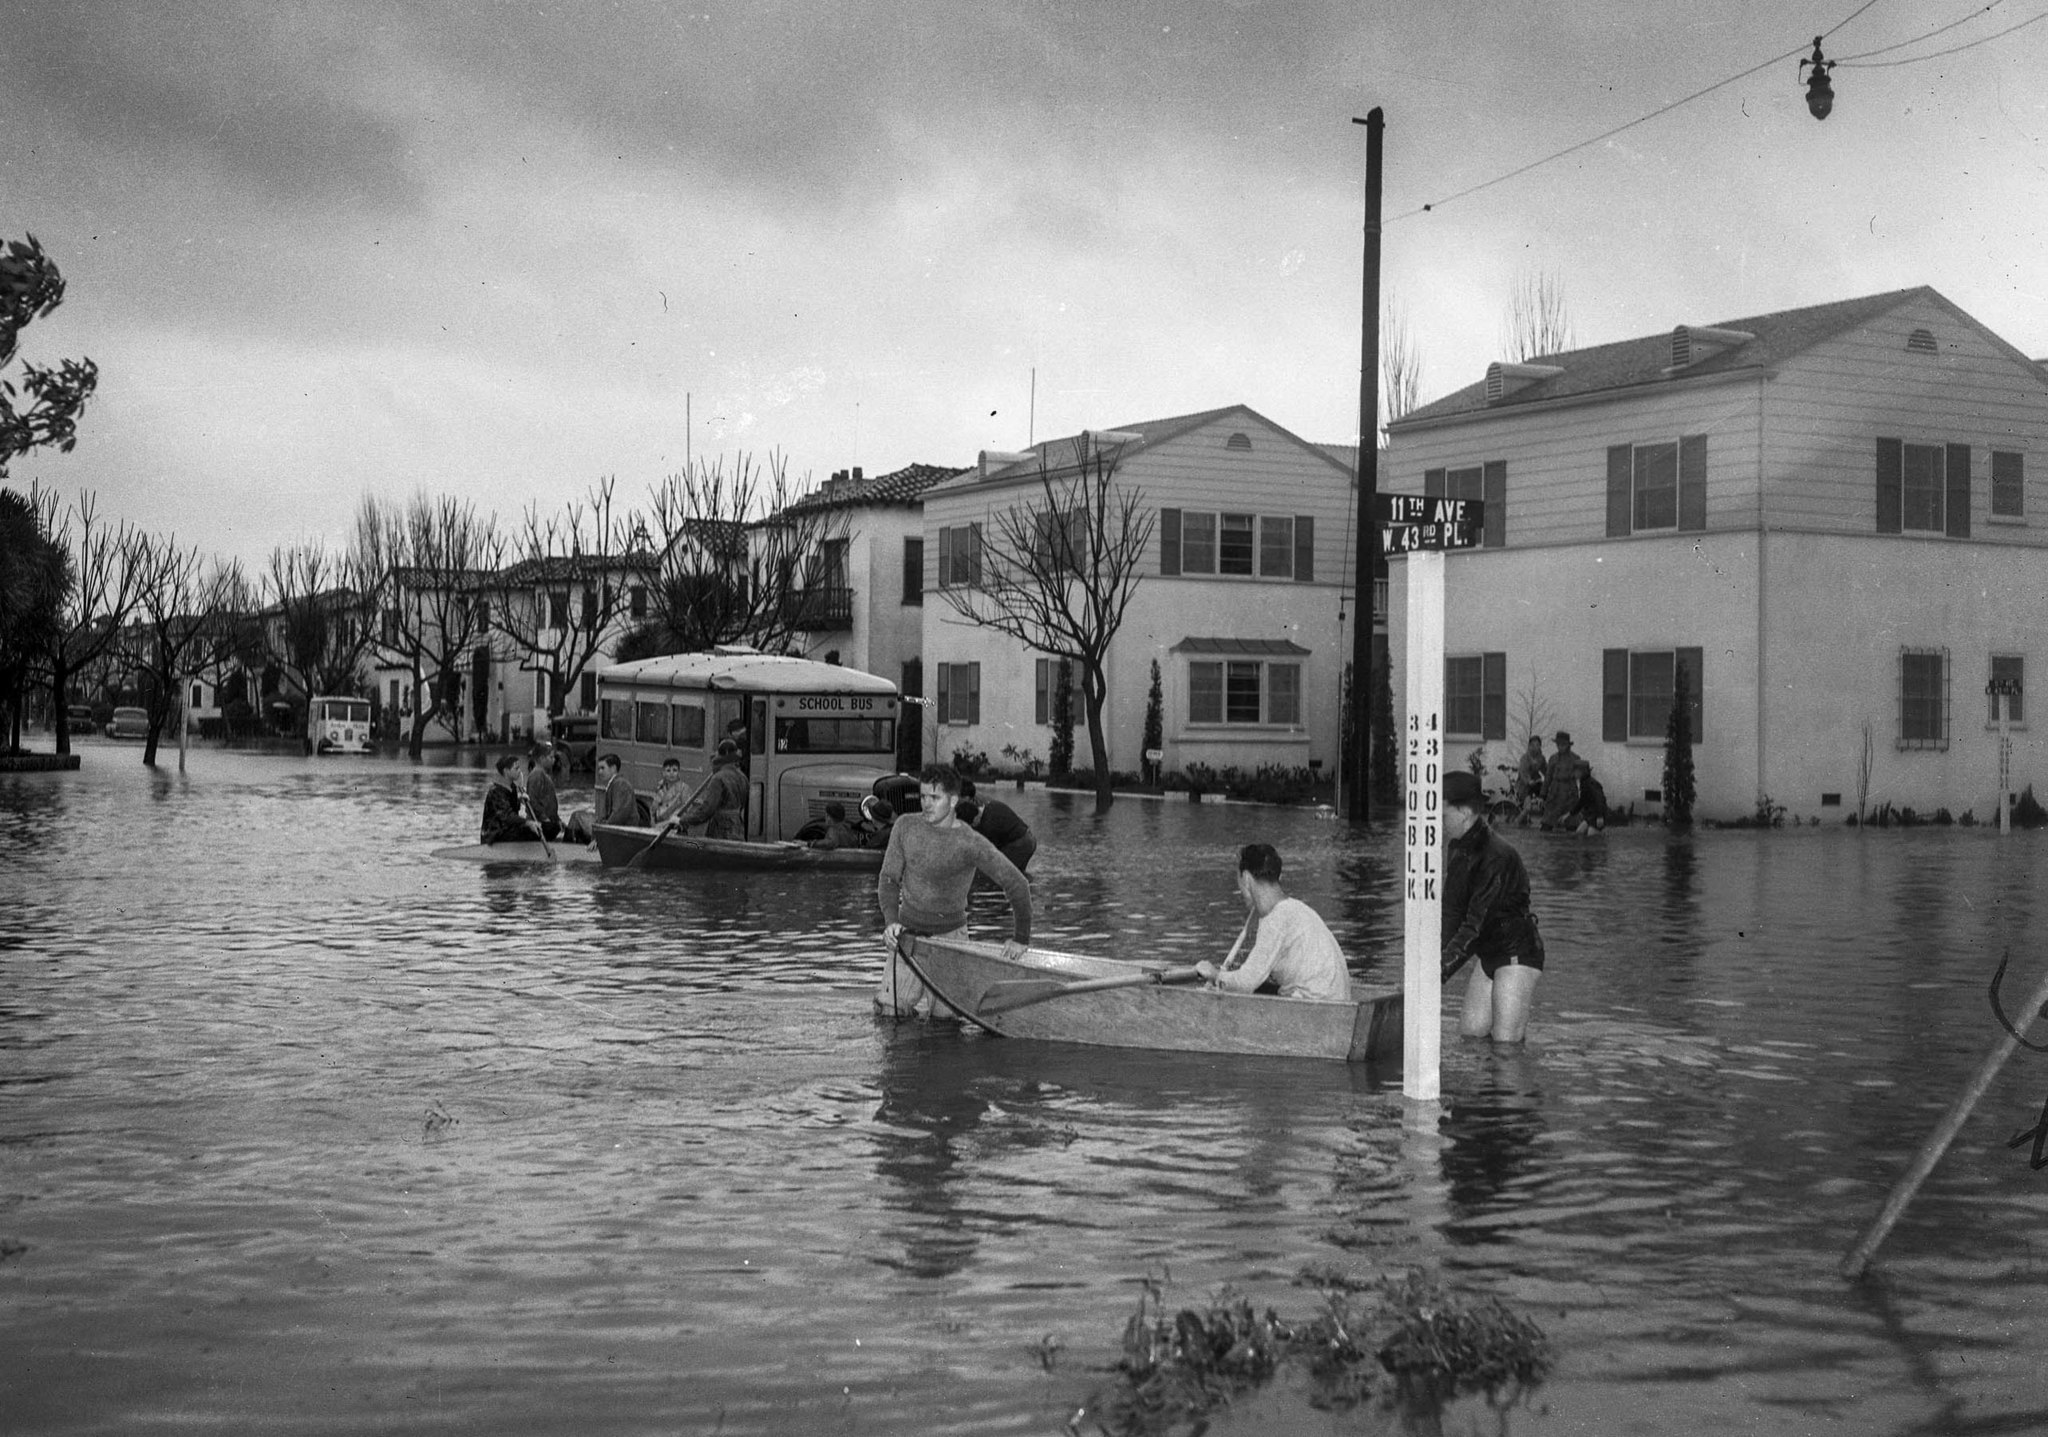 March 2, 1938: Flooding at West Forty-Third Place and 11th Avenue near Leimert Boulevard with stuck